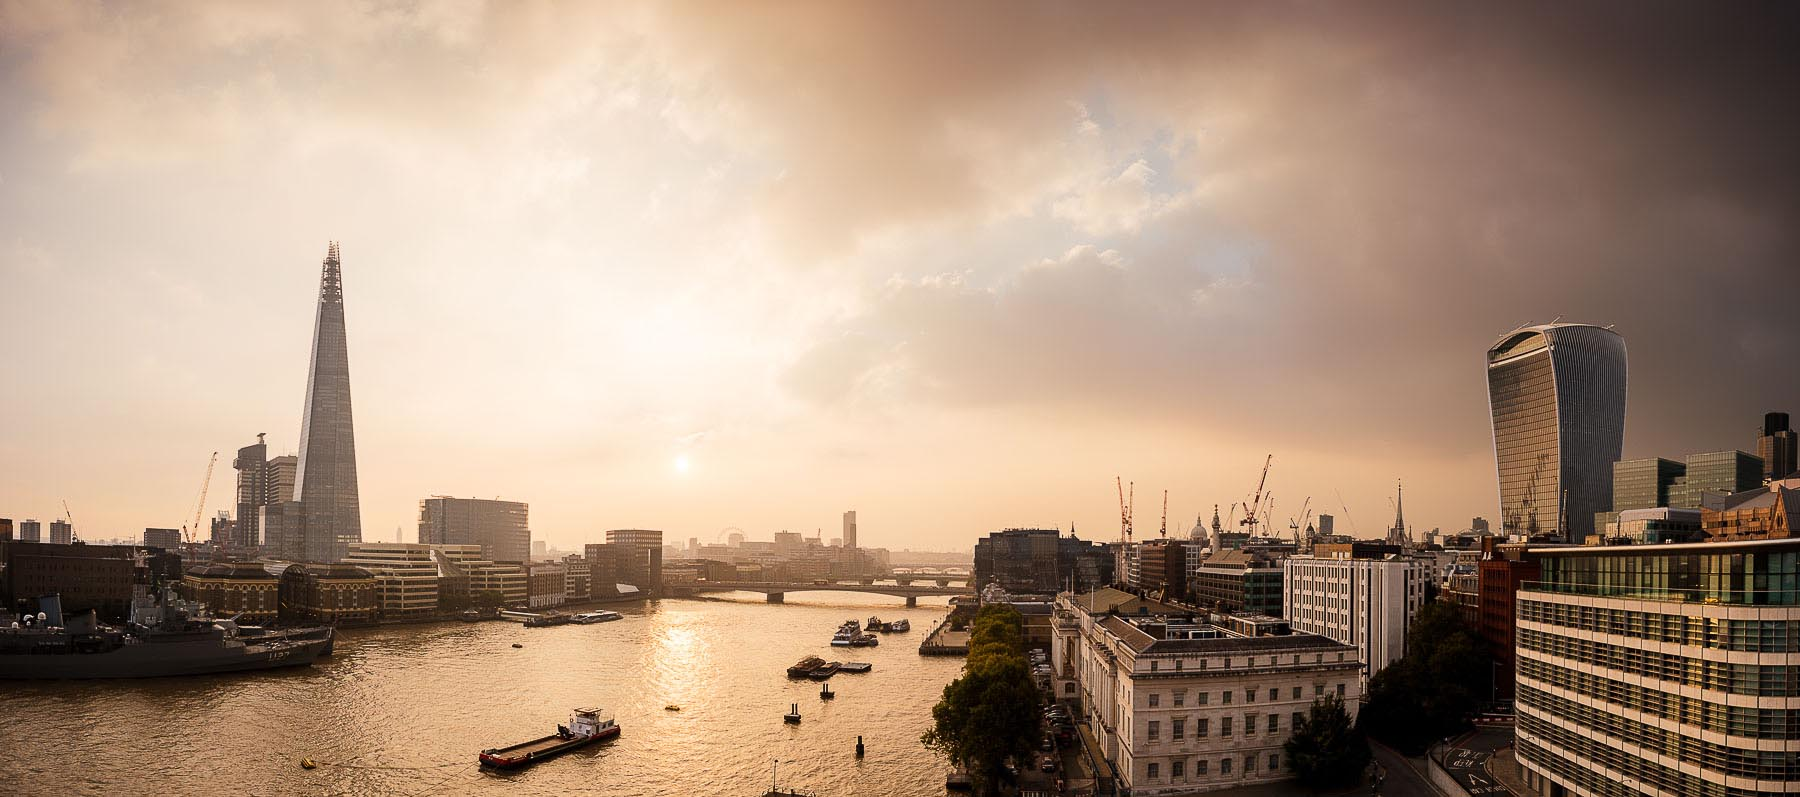 River-Thames-London-Skyline-panoramic-cityscape-12